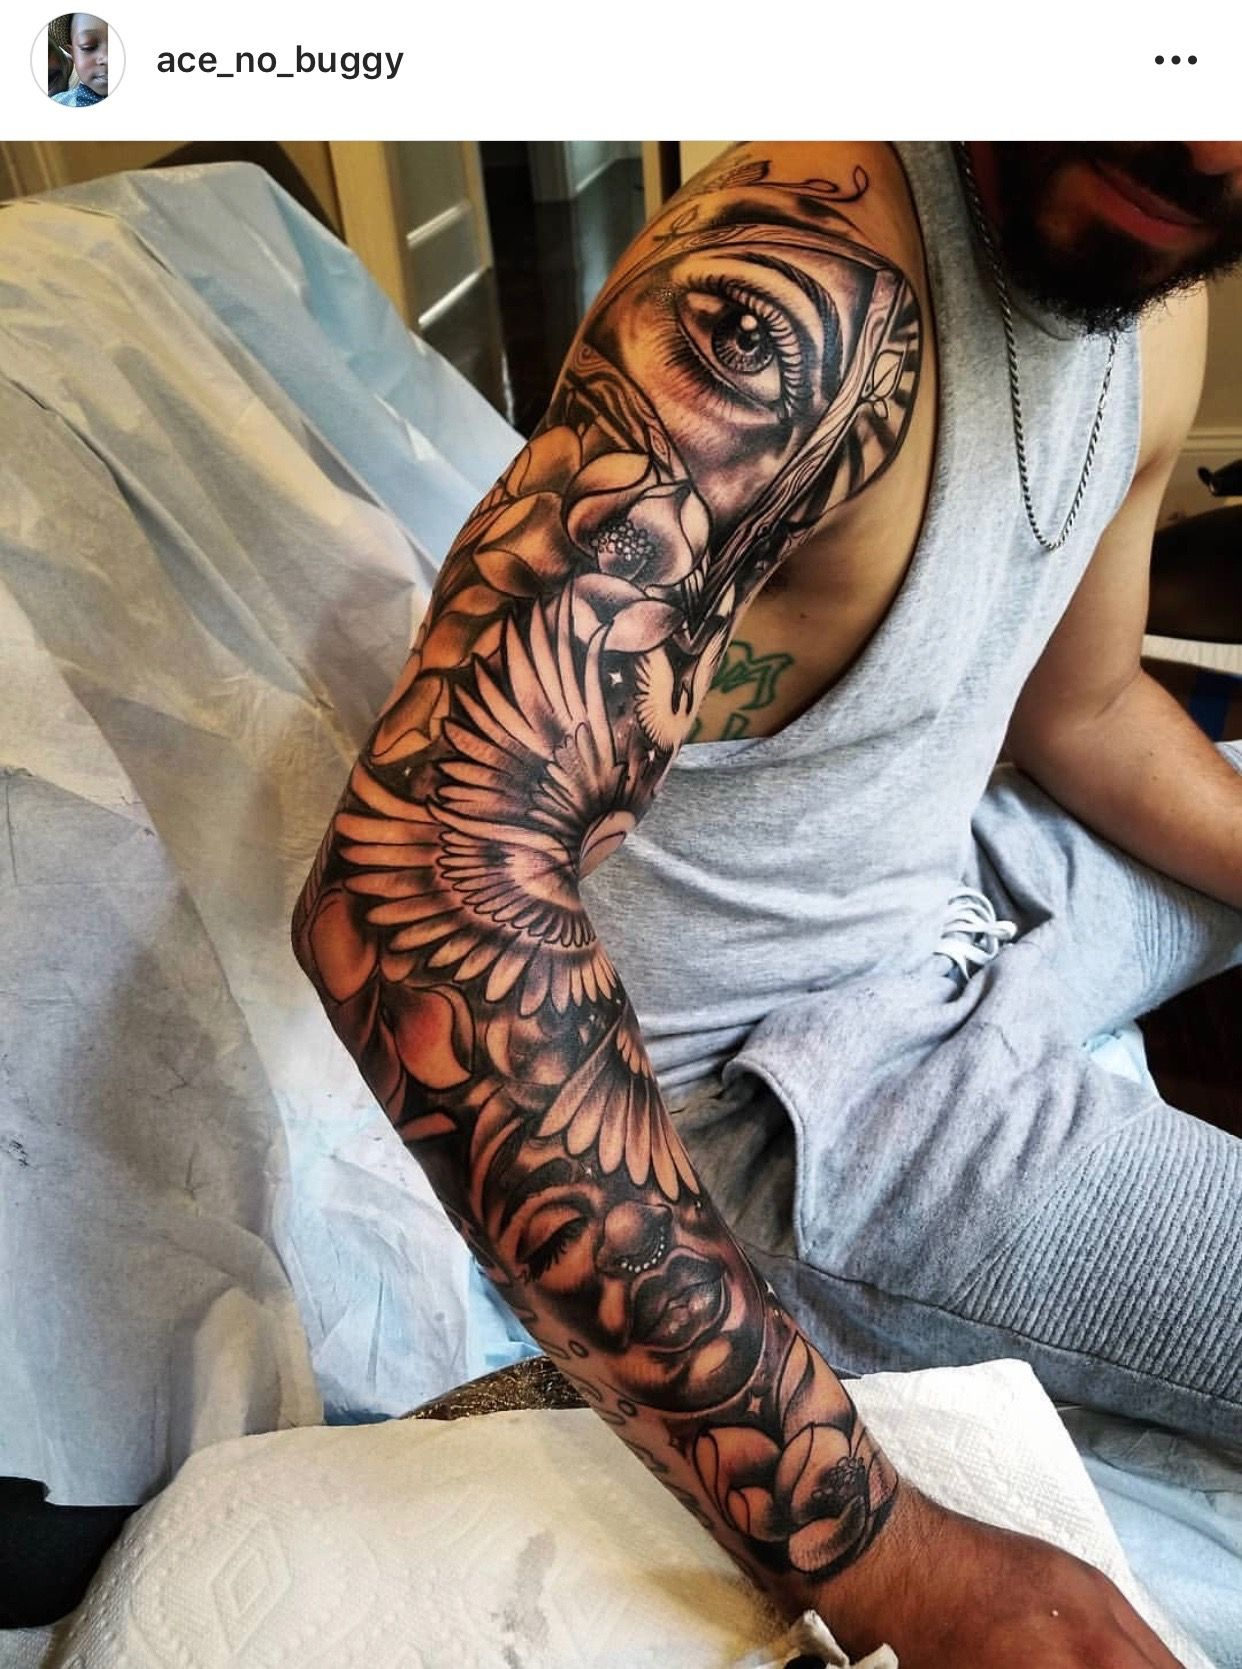 Pin by Muffie Spencer on Ink ♡ Tribal tattoos, Sleeve